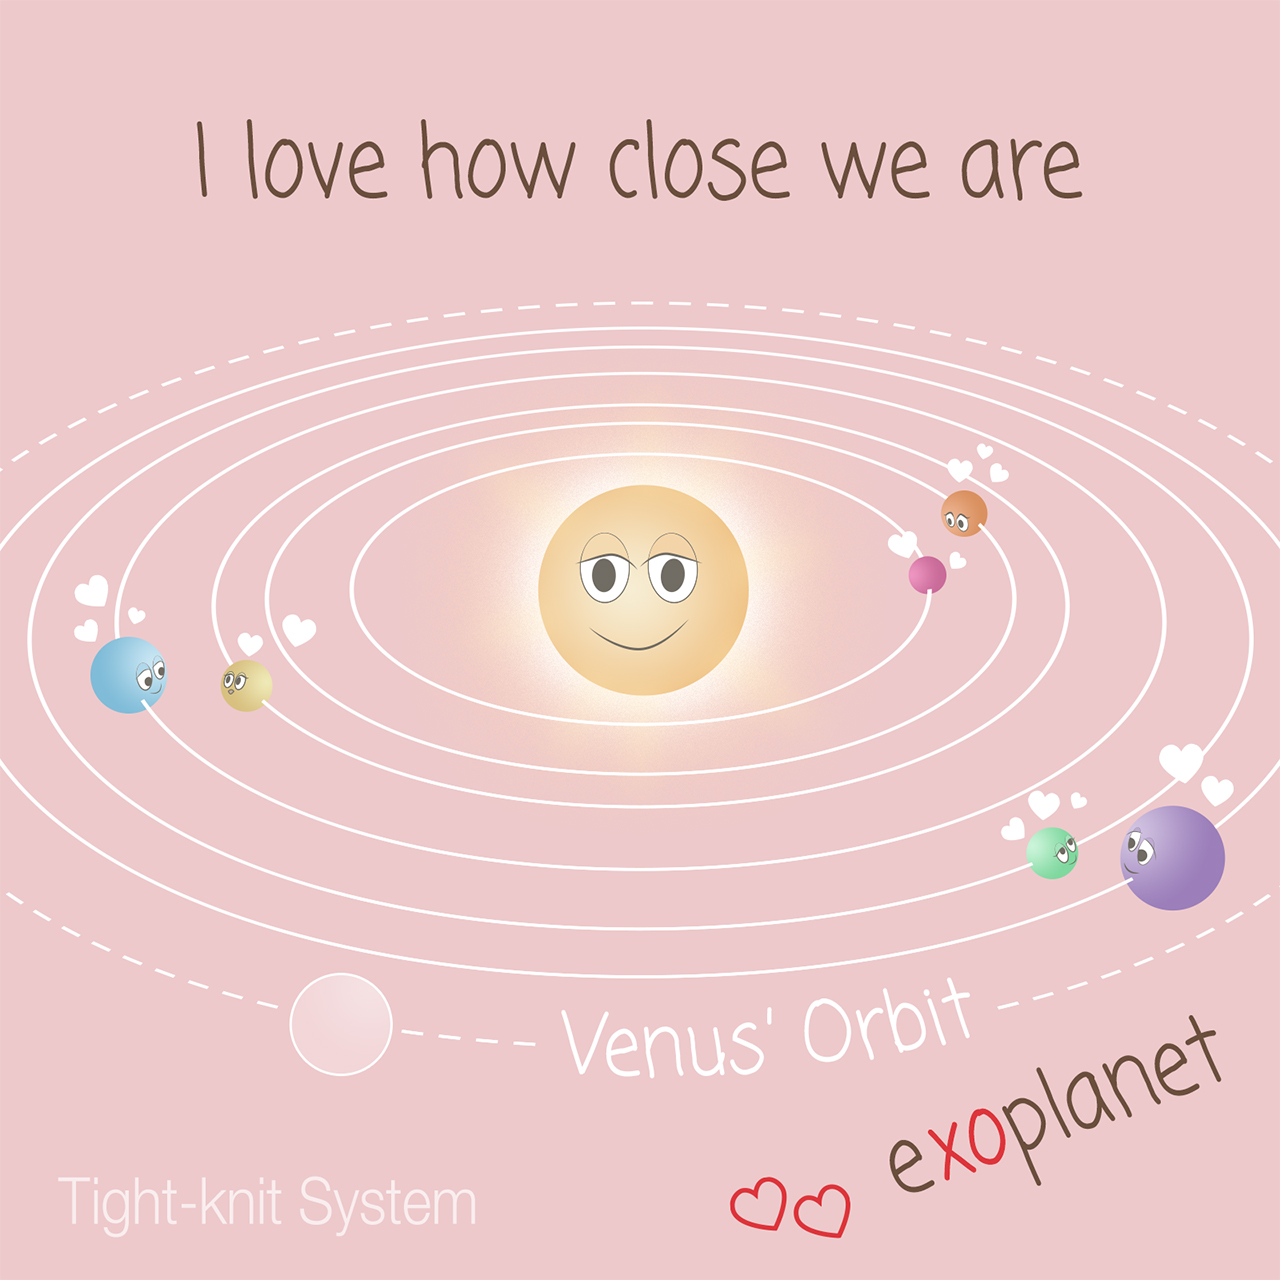 An illustration of an exoplanet Valentine.